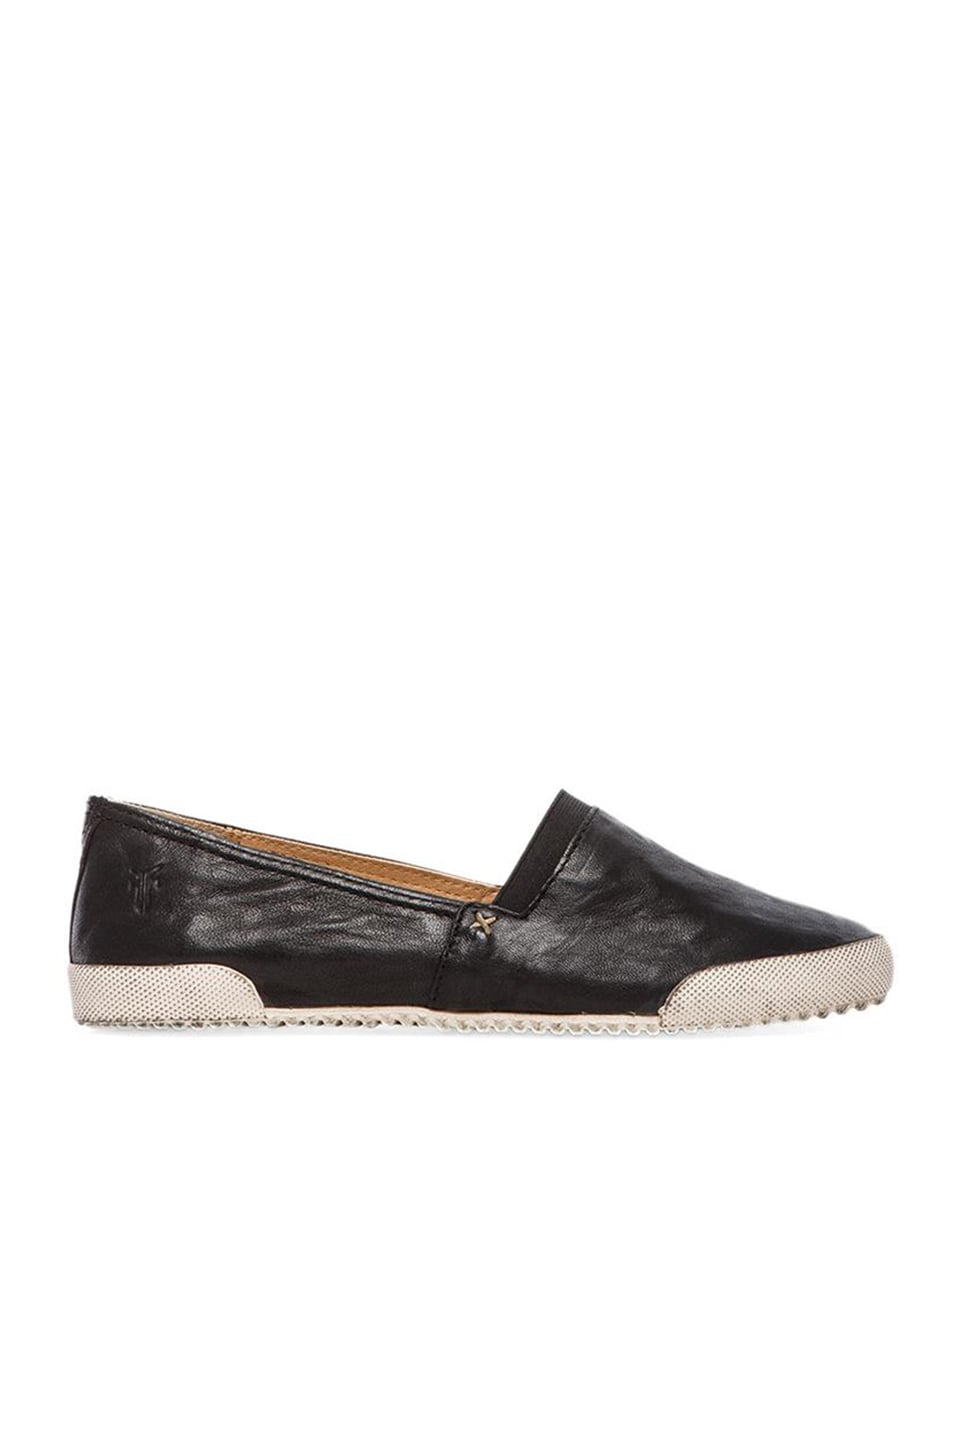 Frye Melanie Slip On in Black